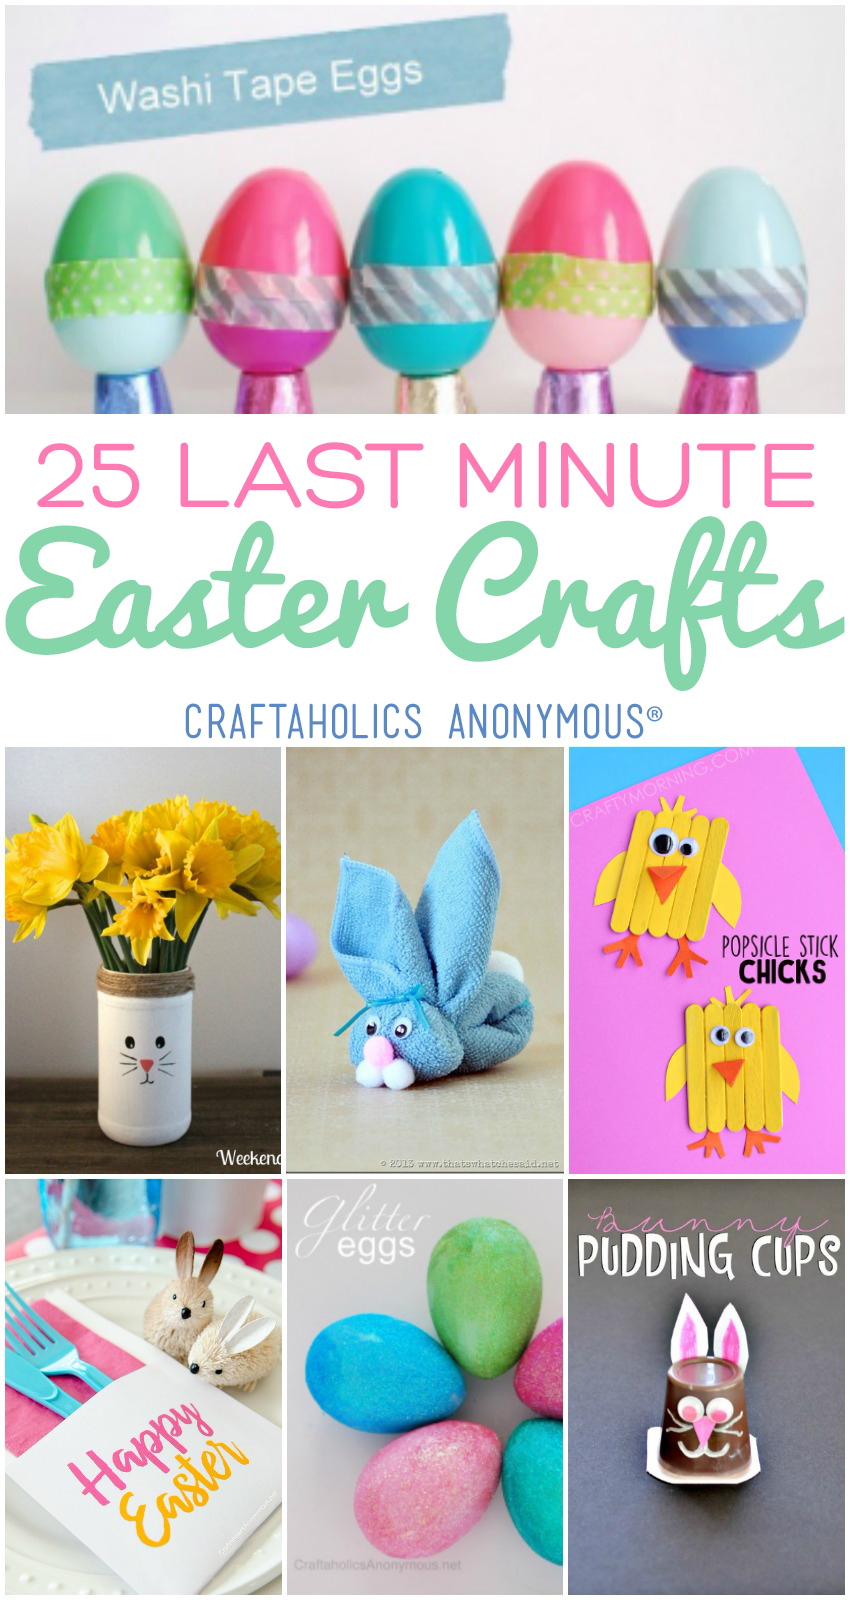 25 Last Minute Easter Crafts